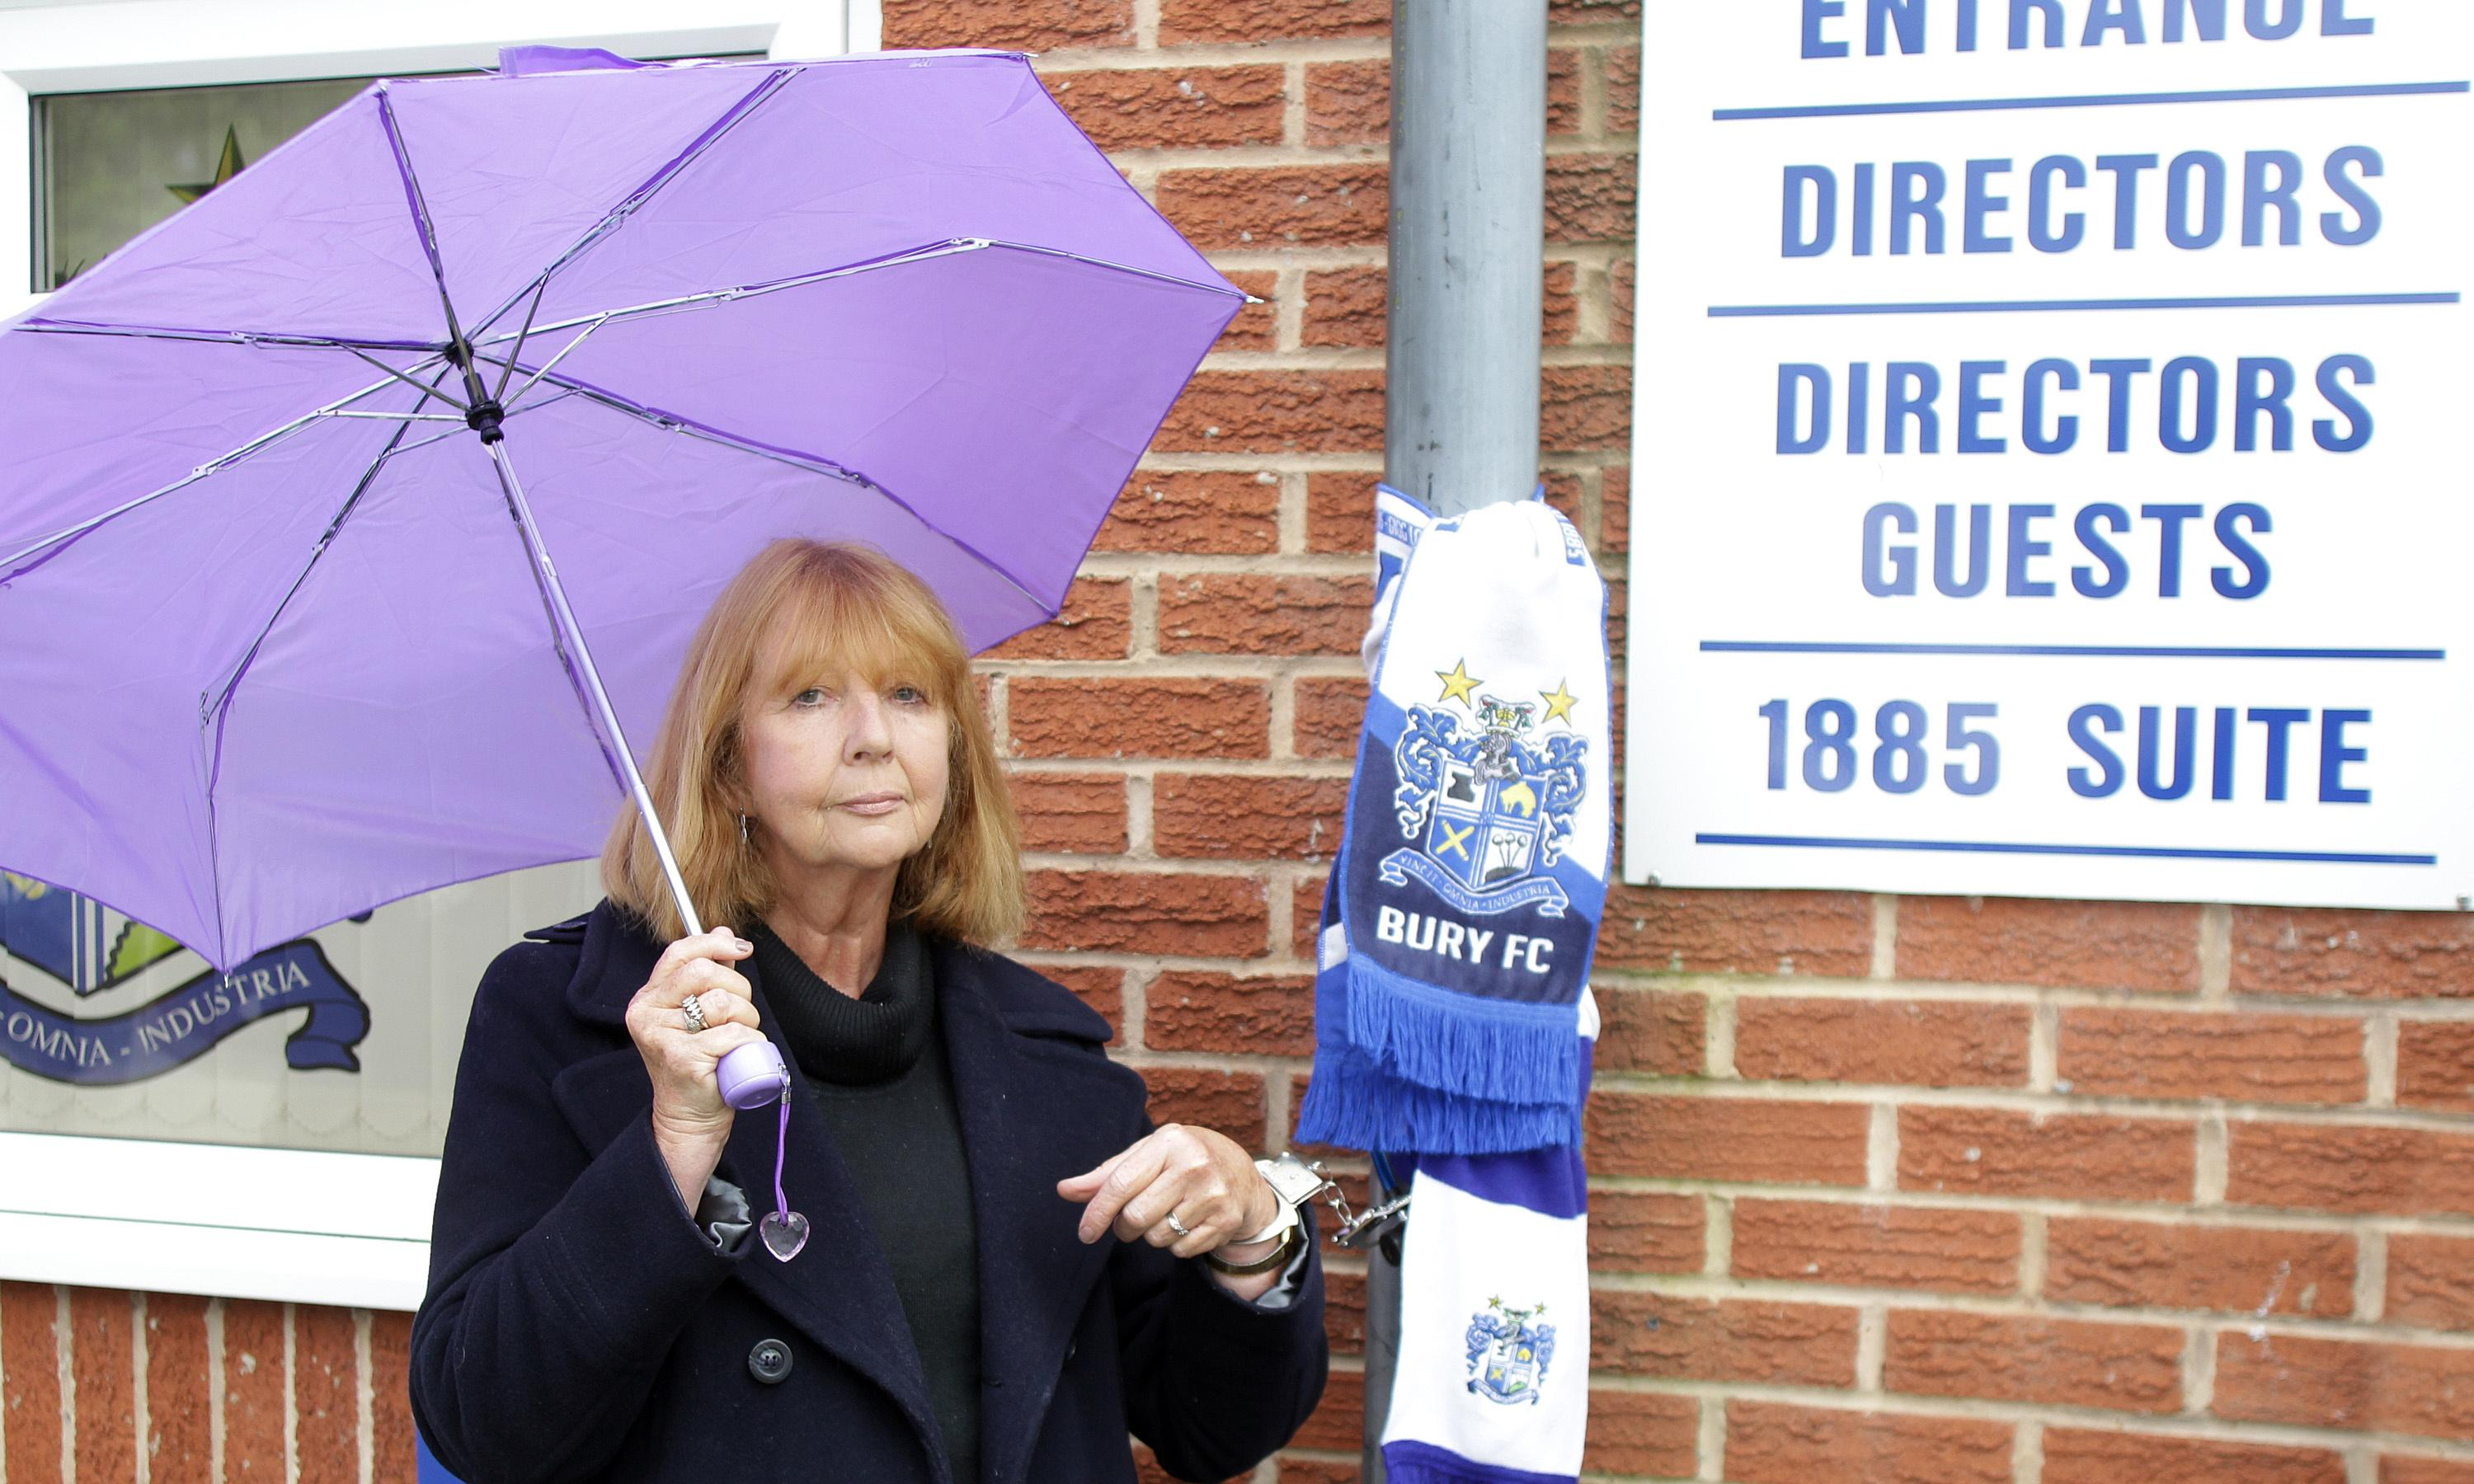 Former Bury FC director chains herself to drainpipe to save club